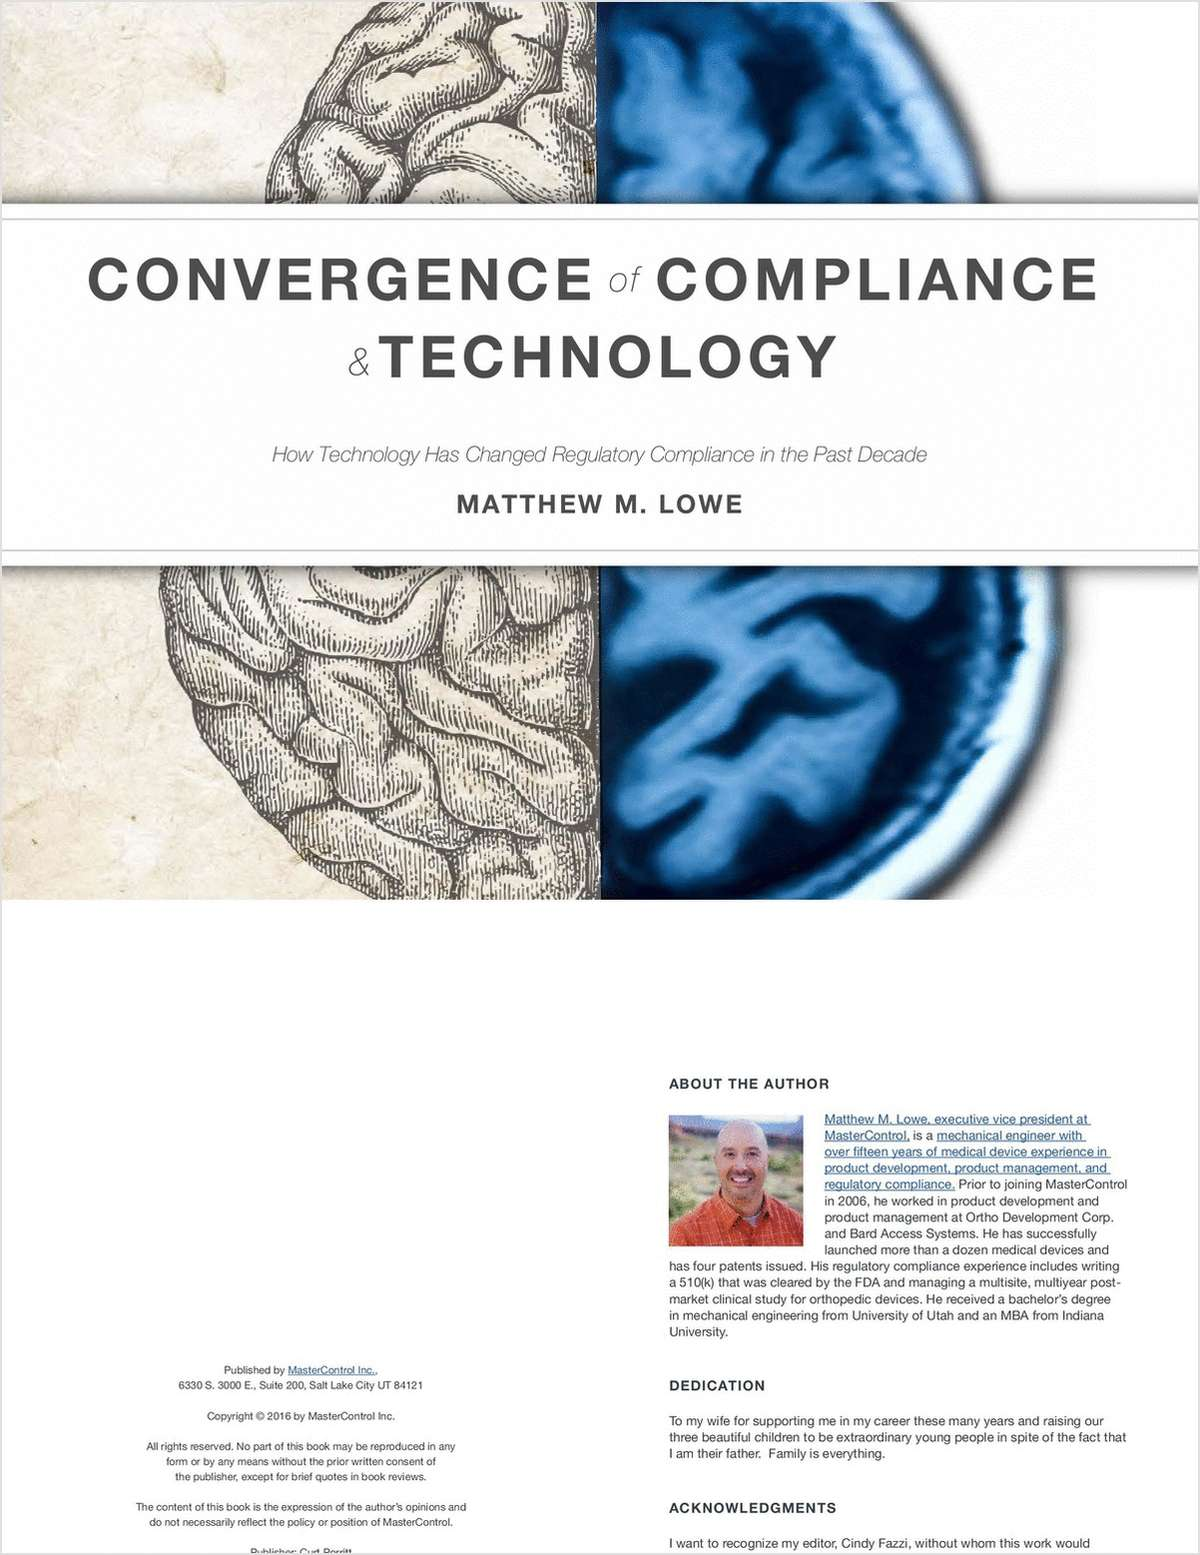 Convergence of Compliance & Technology: How to Meet Changing FDA Expectations